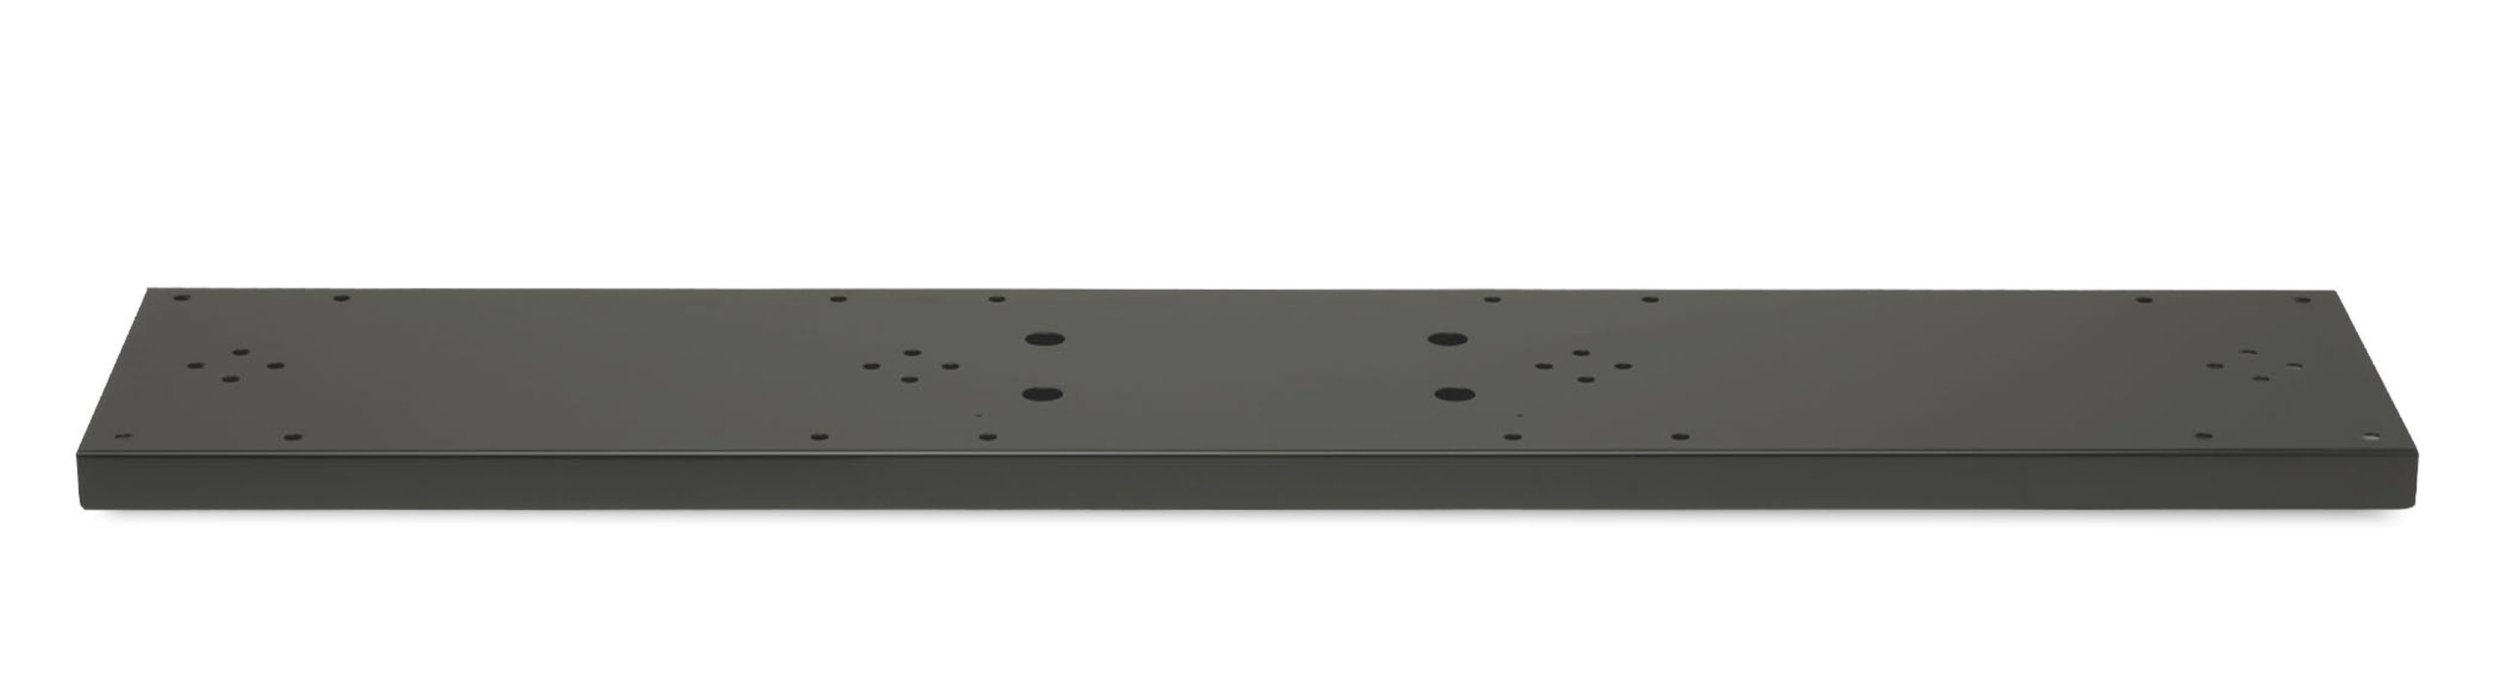 Architectural Mailboxes Quad Spreader Plate Black